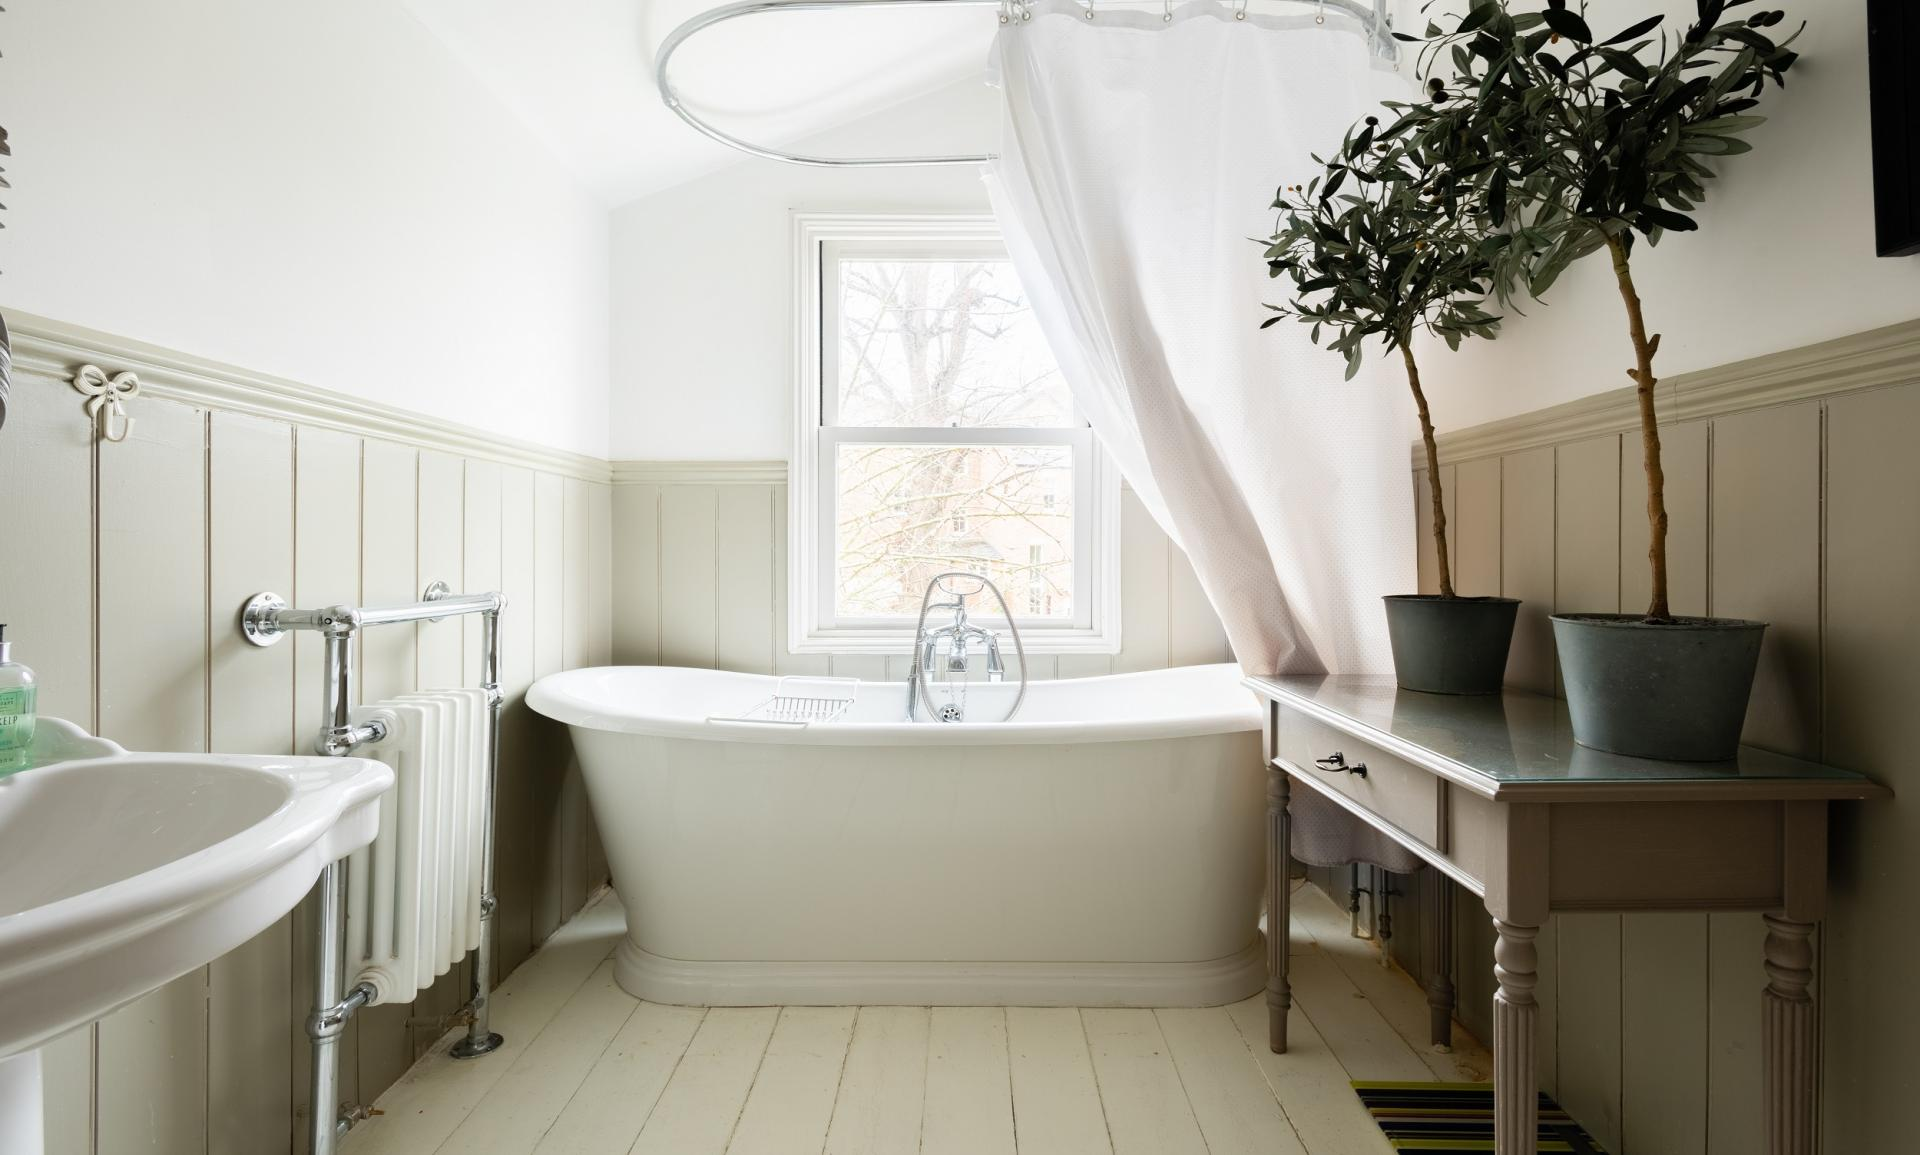 Bath at The Writer's Townhouse, Centre, Oxford - Citybase Apartments